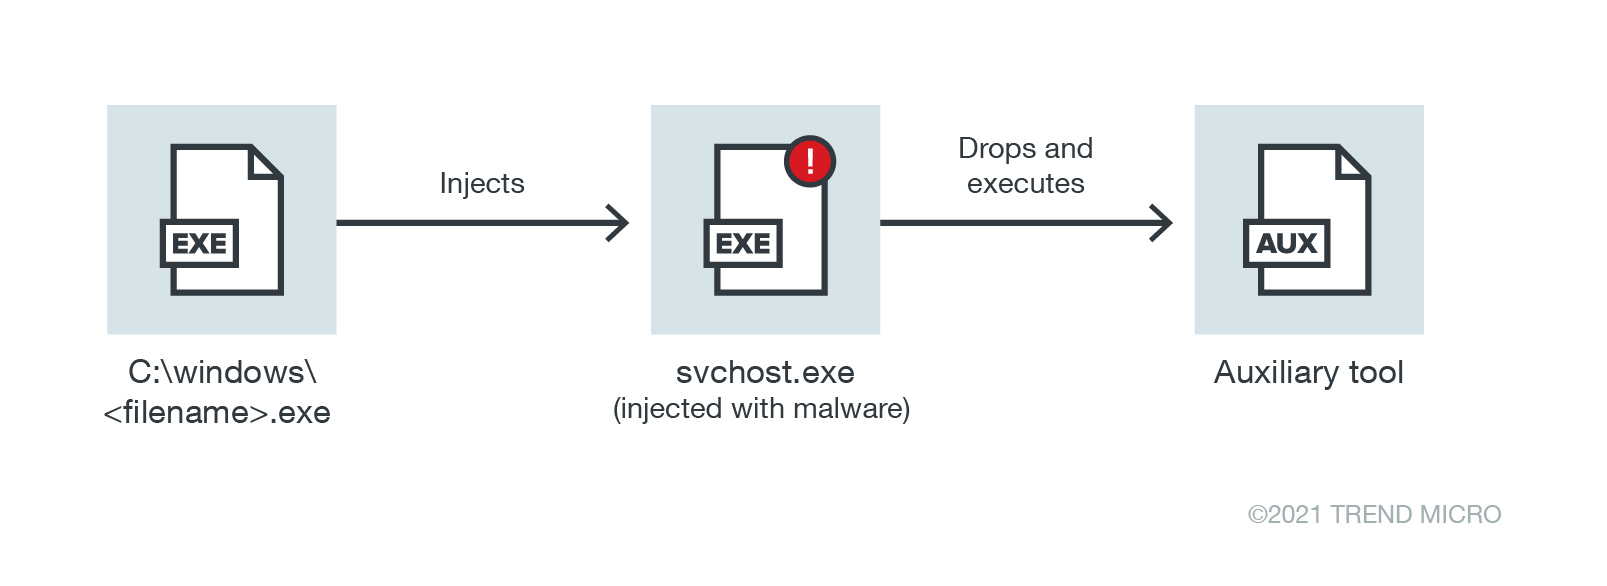 A straightforward approach to launching a malicious tool